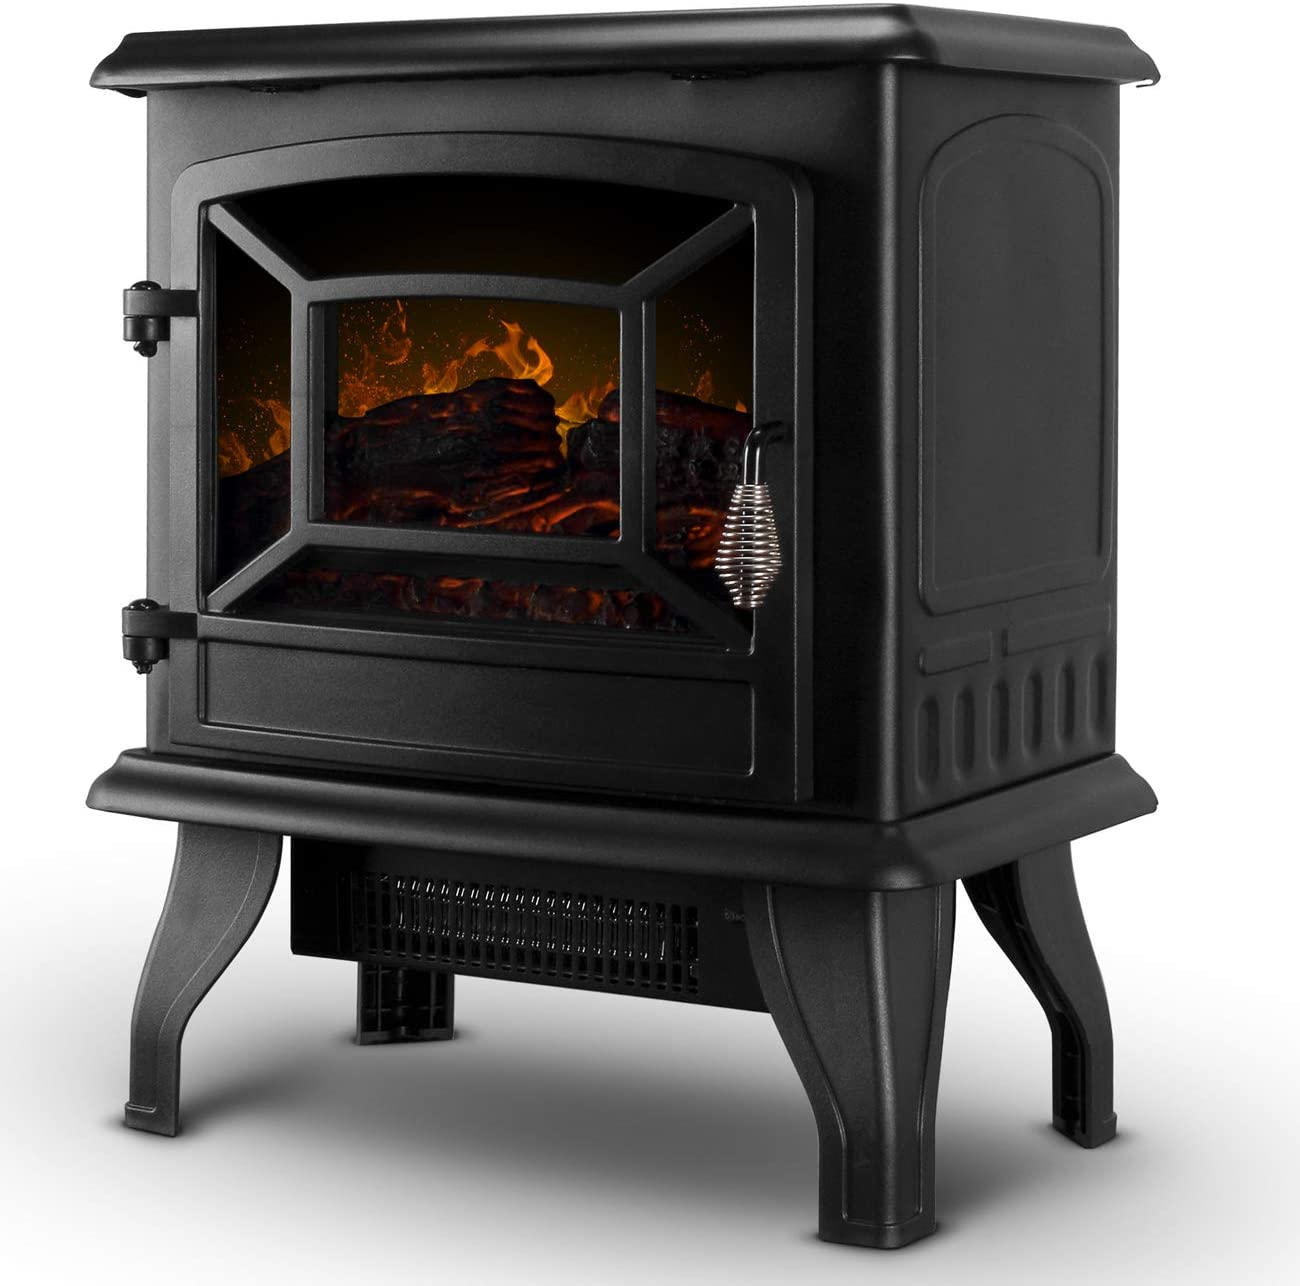 Della 17 Freestanding Portable Electric Fireplace Stove Infrared Quartz Realistic 3d Flames Firebox W Logs Heater Csa Certified 1400 Watts Black Home Kitchen